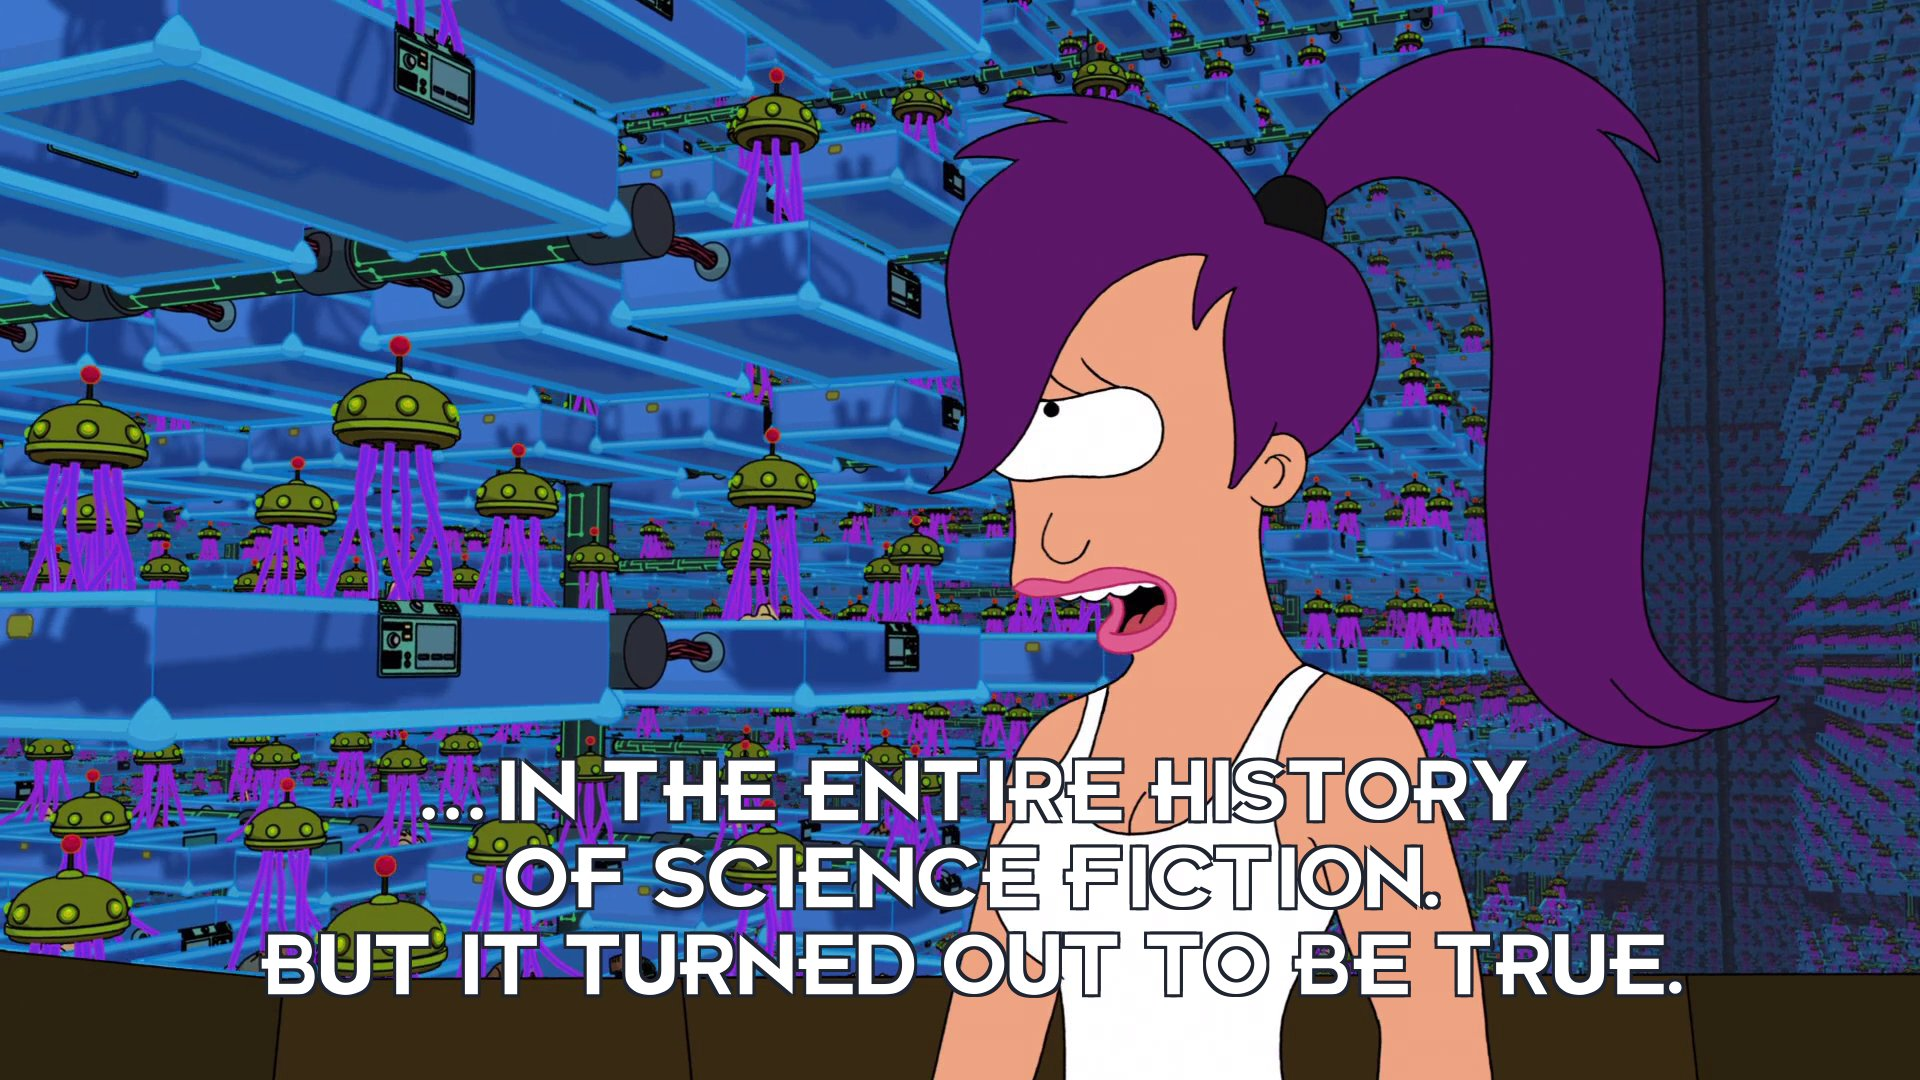 Turanga Leela: ...in the entire history of science fiction. But it turned out to be true.